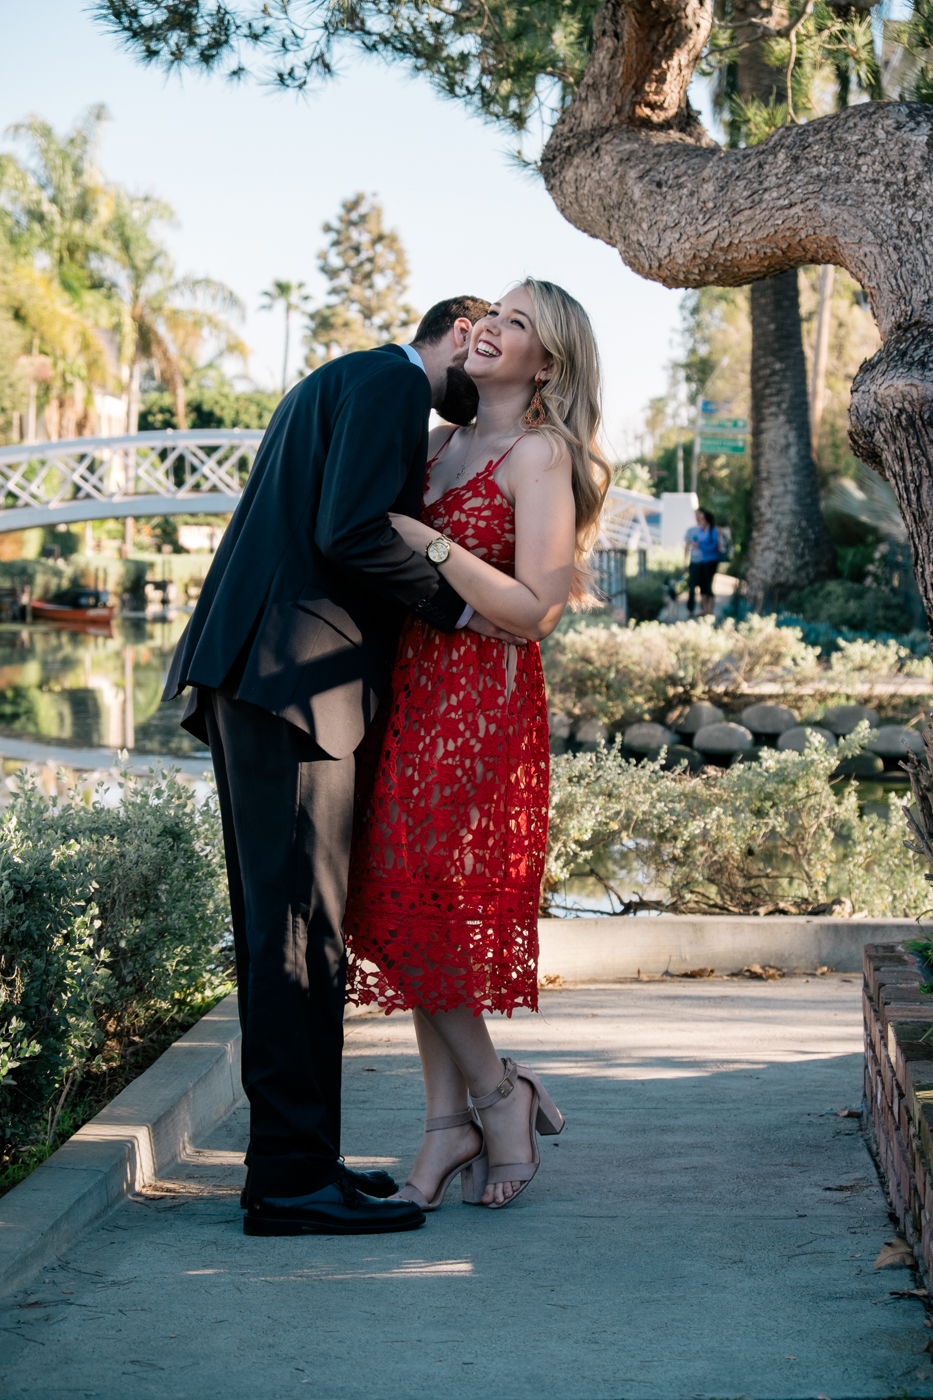 Benjamin and Debora Dahl Valentines Day at the Venice Canals in Los Angeles